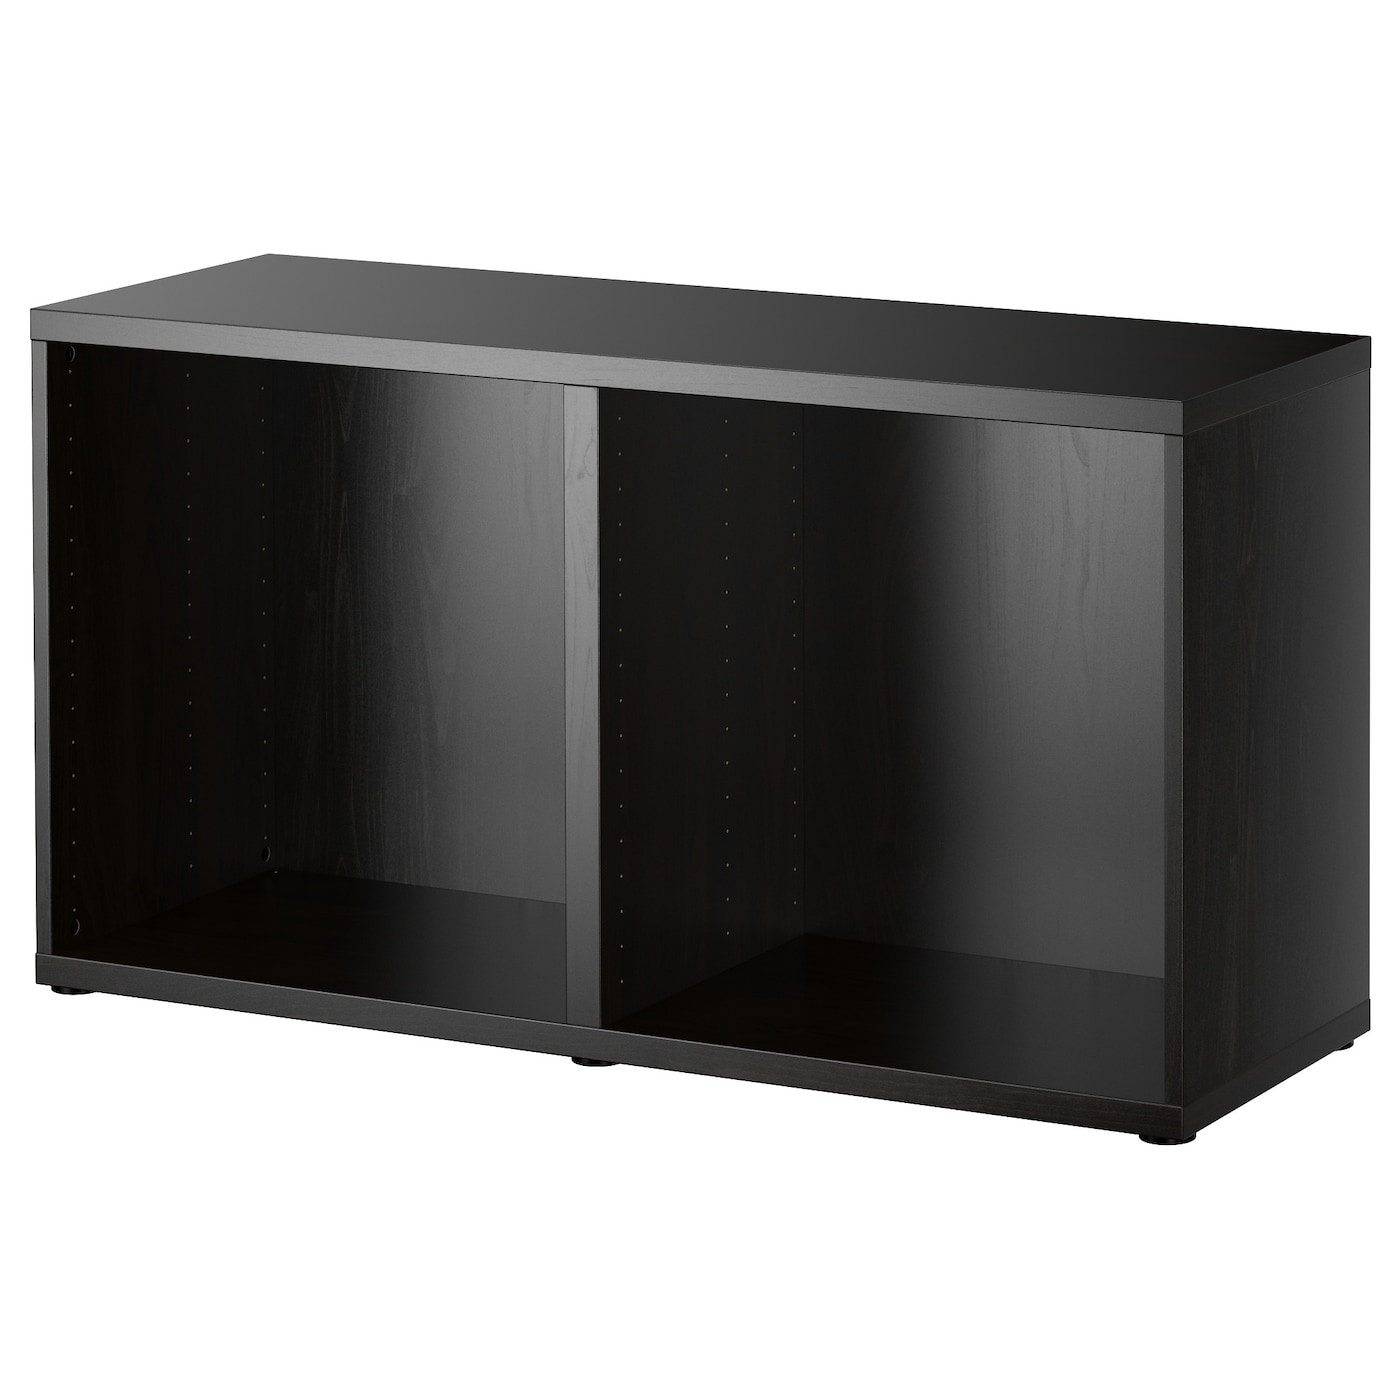 Best frame black brown 120x40x64 cm ikea - Ikea estanteria besta ...